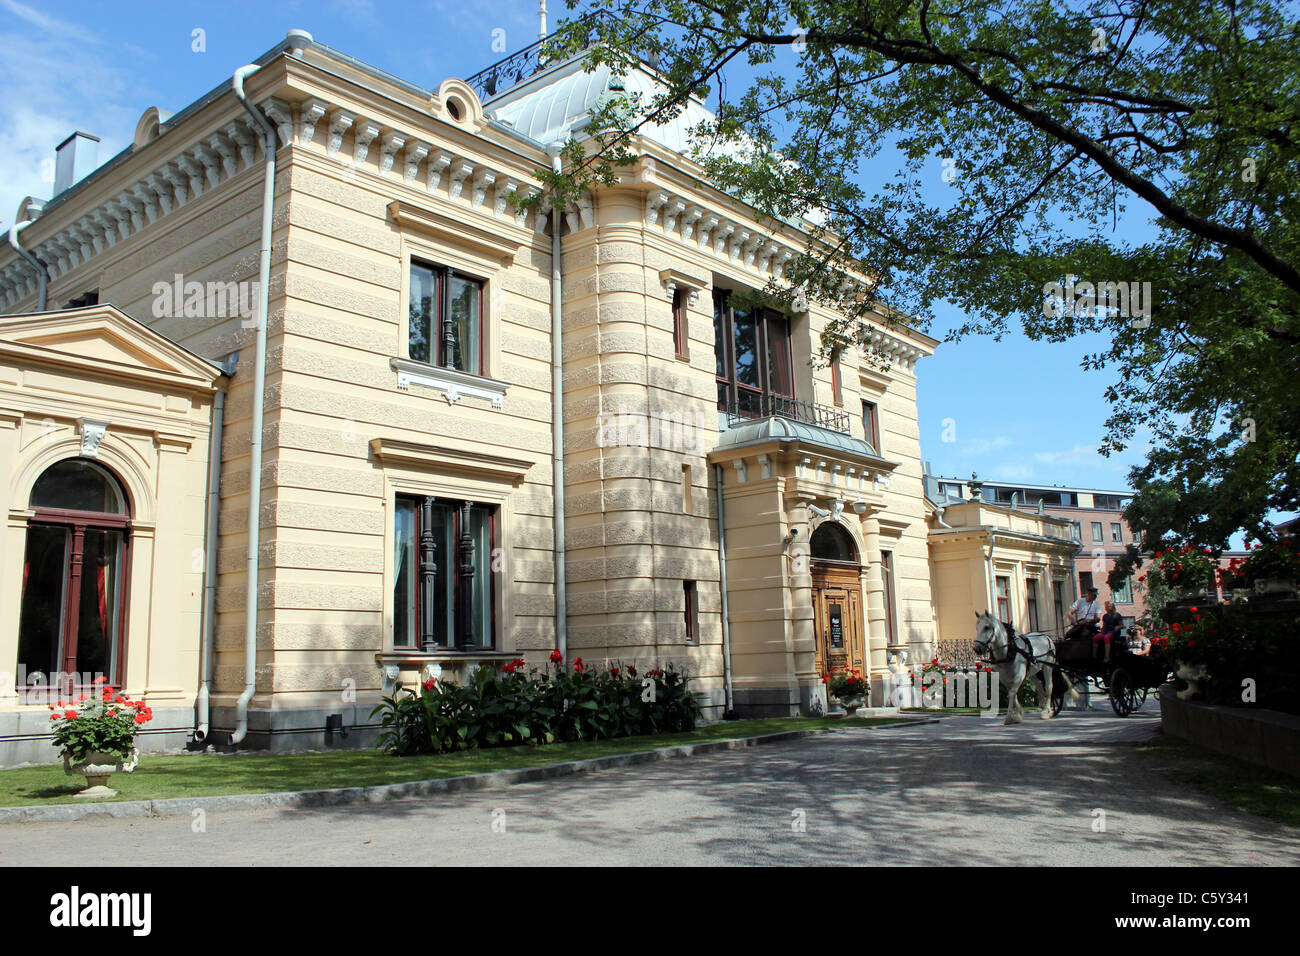 Finlayson Palace Tampere, Finland - Stock Image